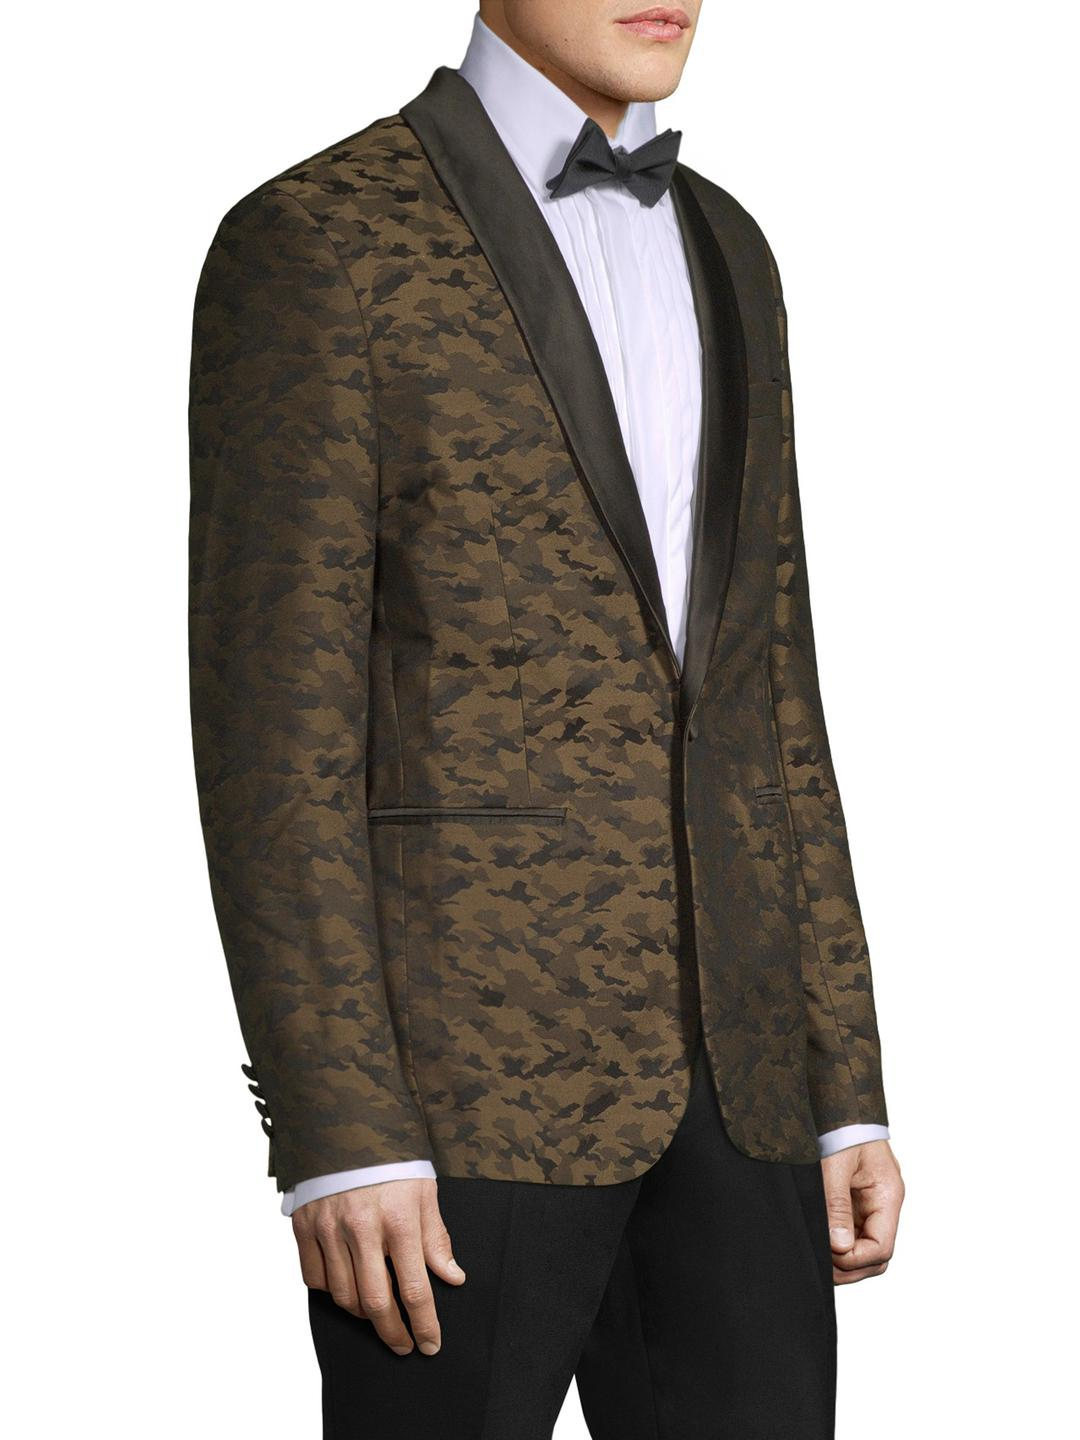 Aspetto Synthetic Camo Print Tuxedo Jacket in Brown for Men